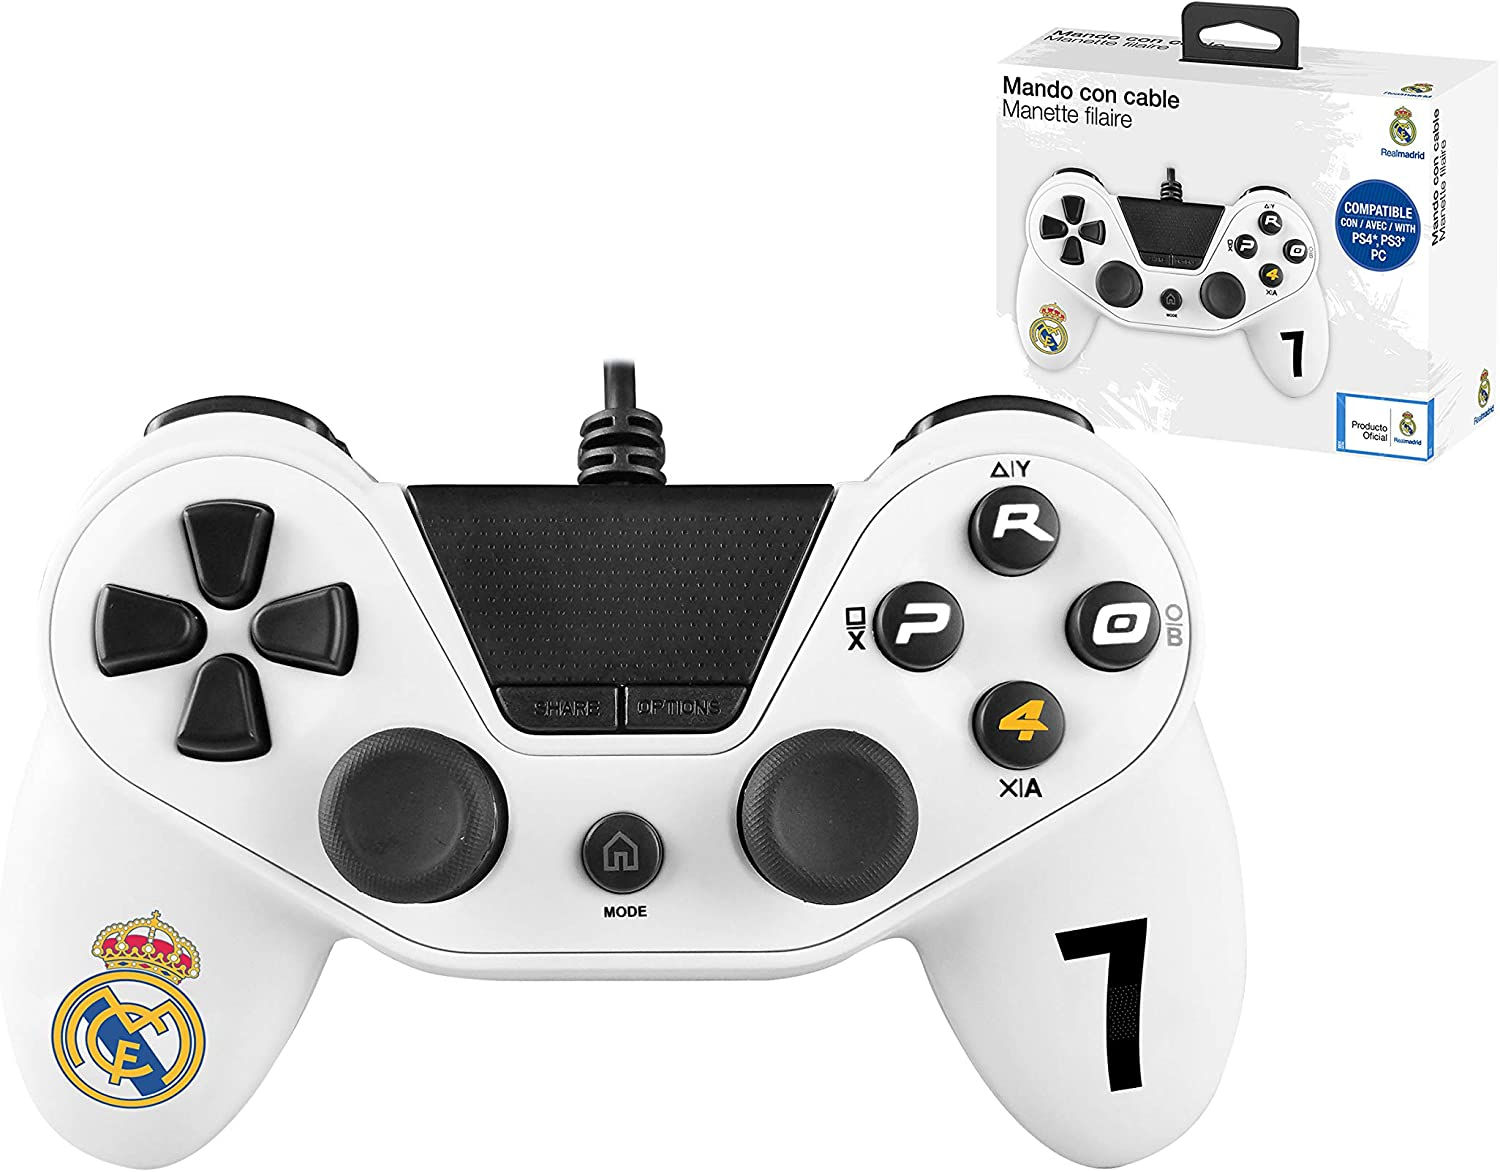 Mando con cable Pro4 controller para consola PS4 / Slim/ Pr - PC -PS3 - Accesorios de videojuegos Real Madrid: Amazon.es: Videojuegos